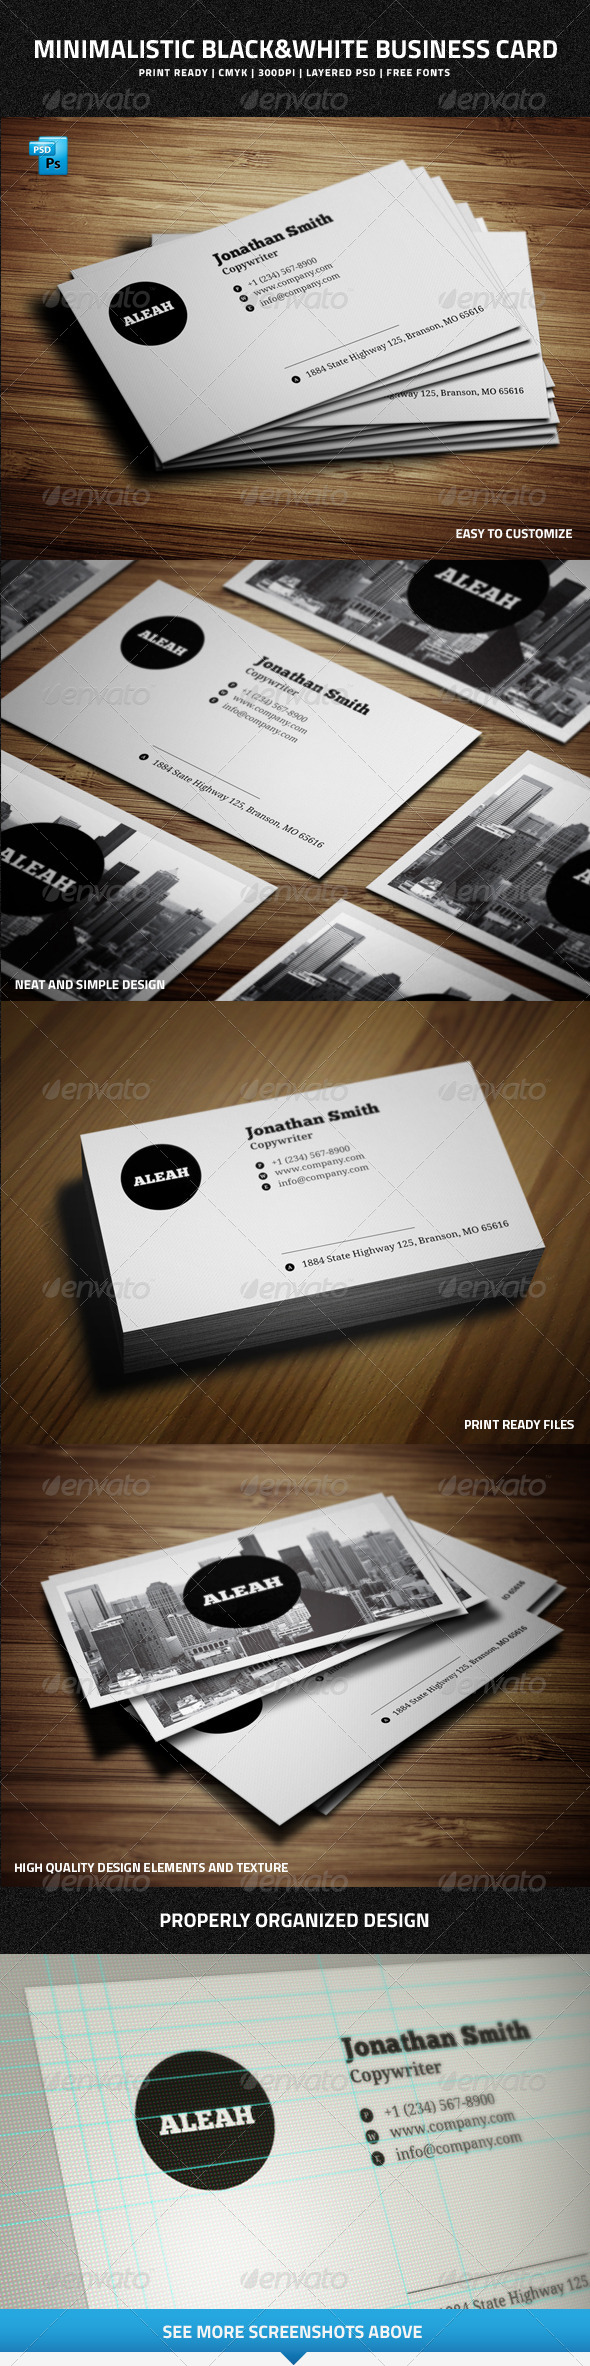 GraphicRiver Minimalistic Black&White Business Card 7010628